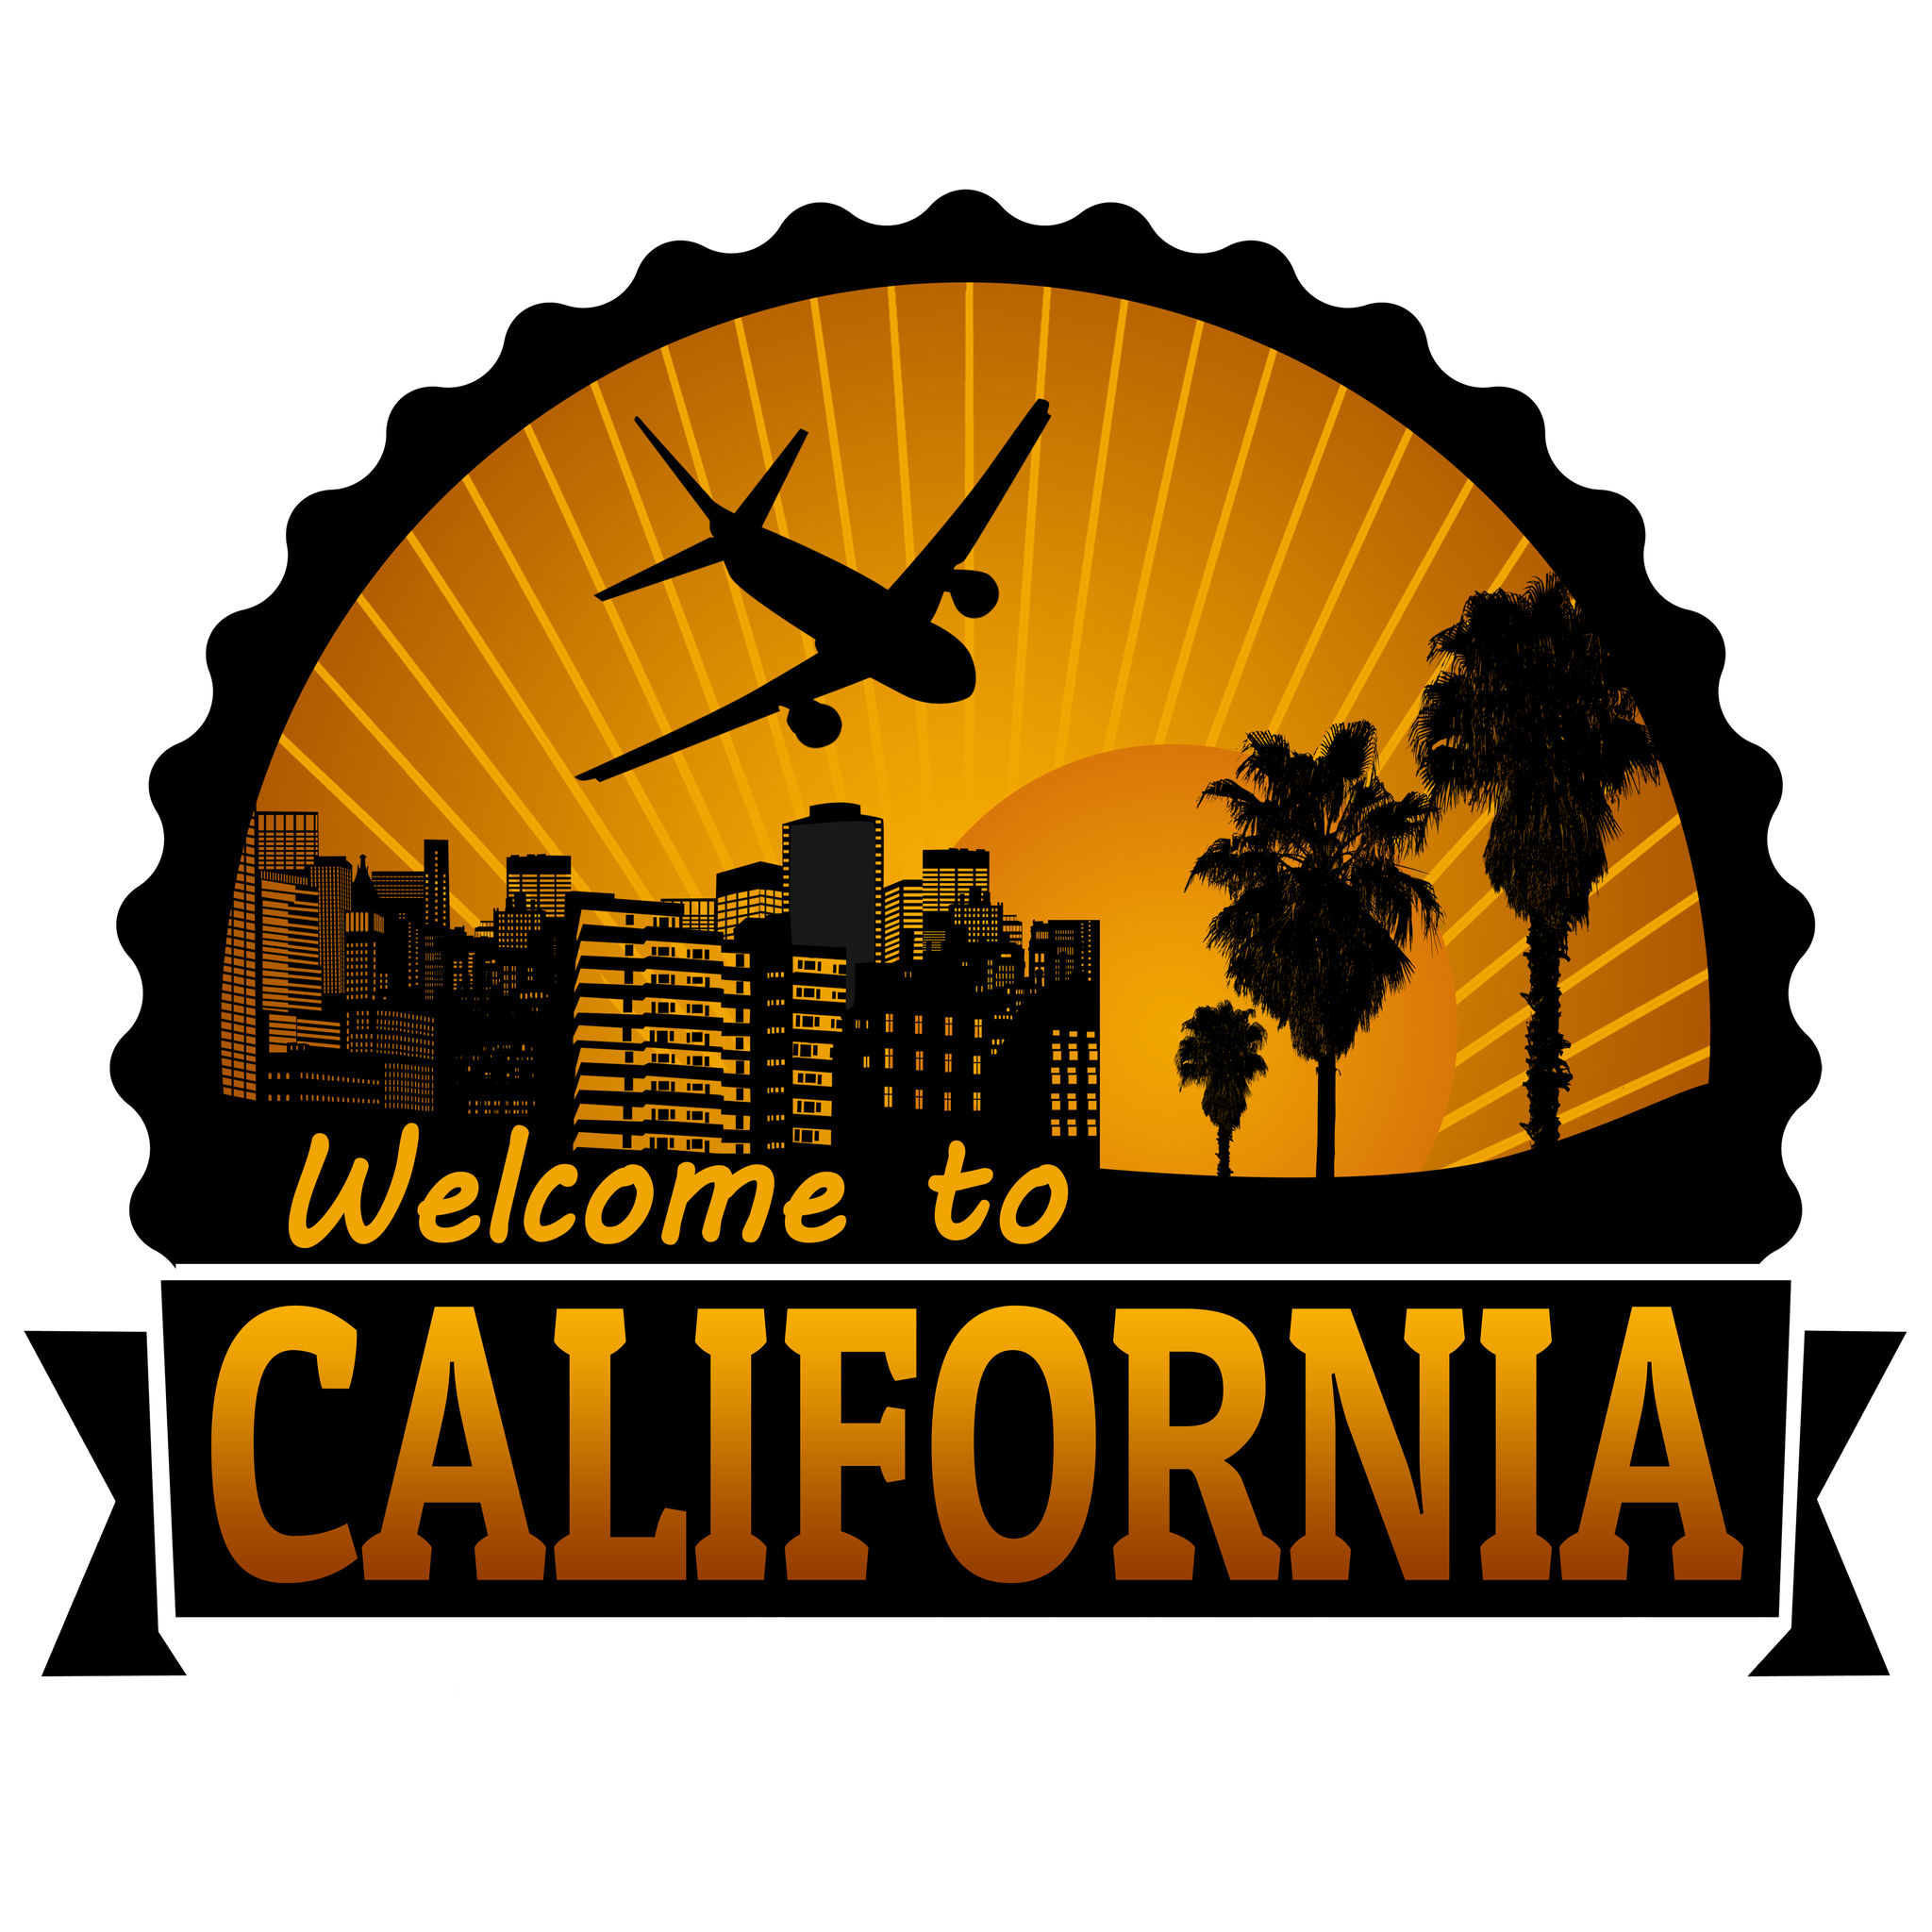 California travel label or stamp